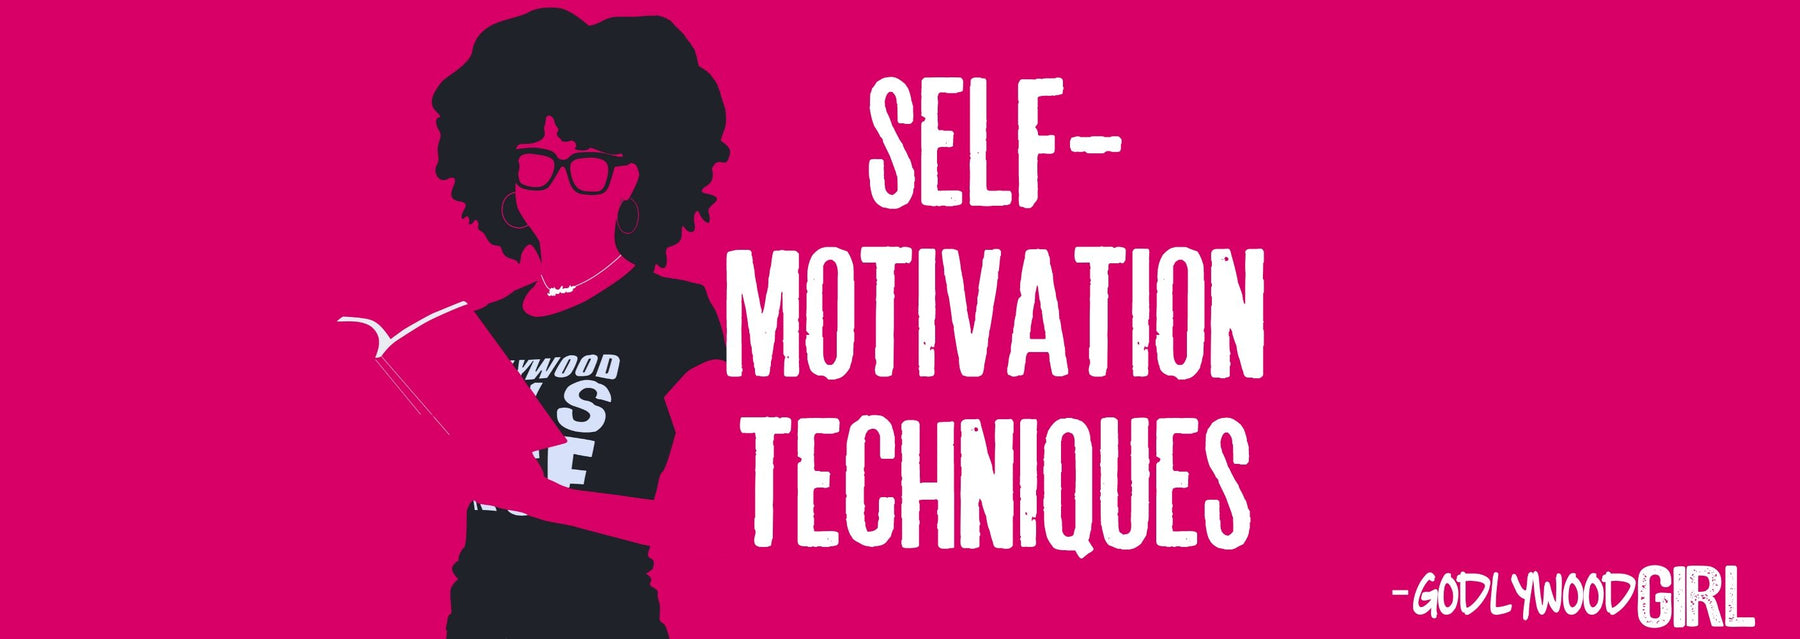 SELF MOTIVATION TECHNIQUES PDF (That Will MOTIVATE You To Do ANYTHING) || SELF-MOTIVATION SERIES #4